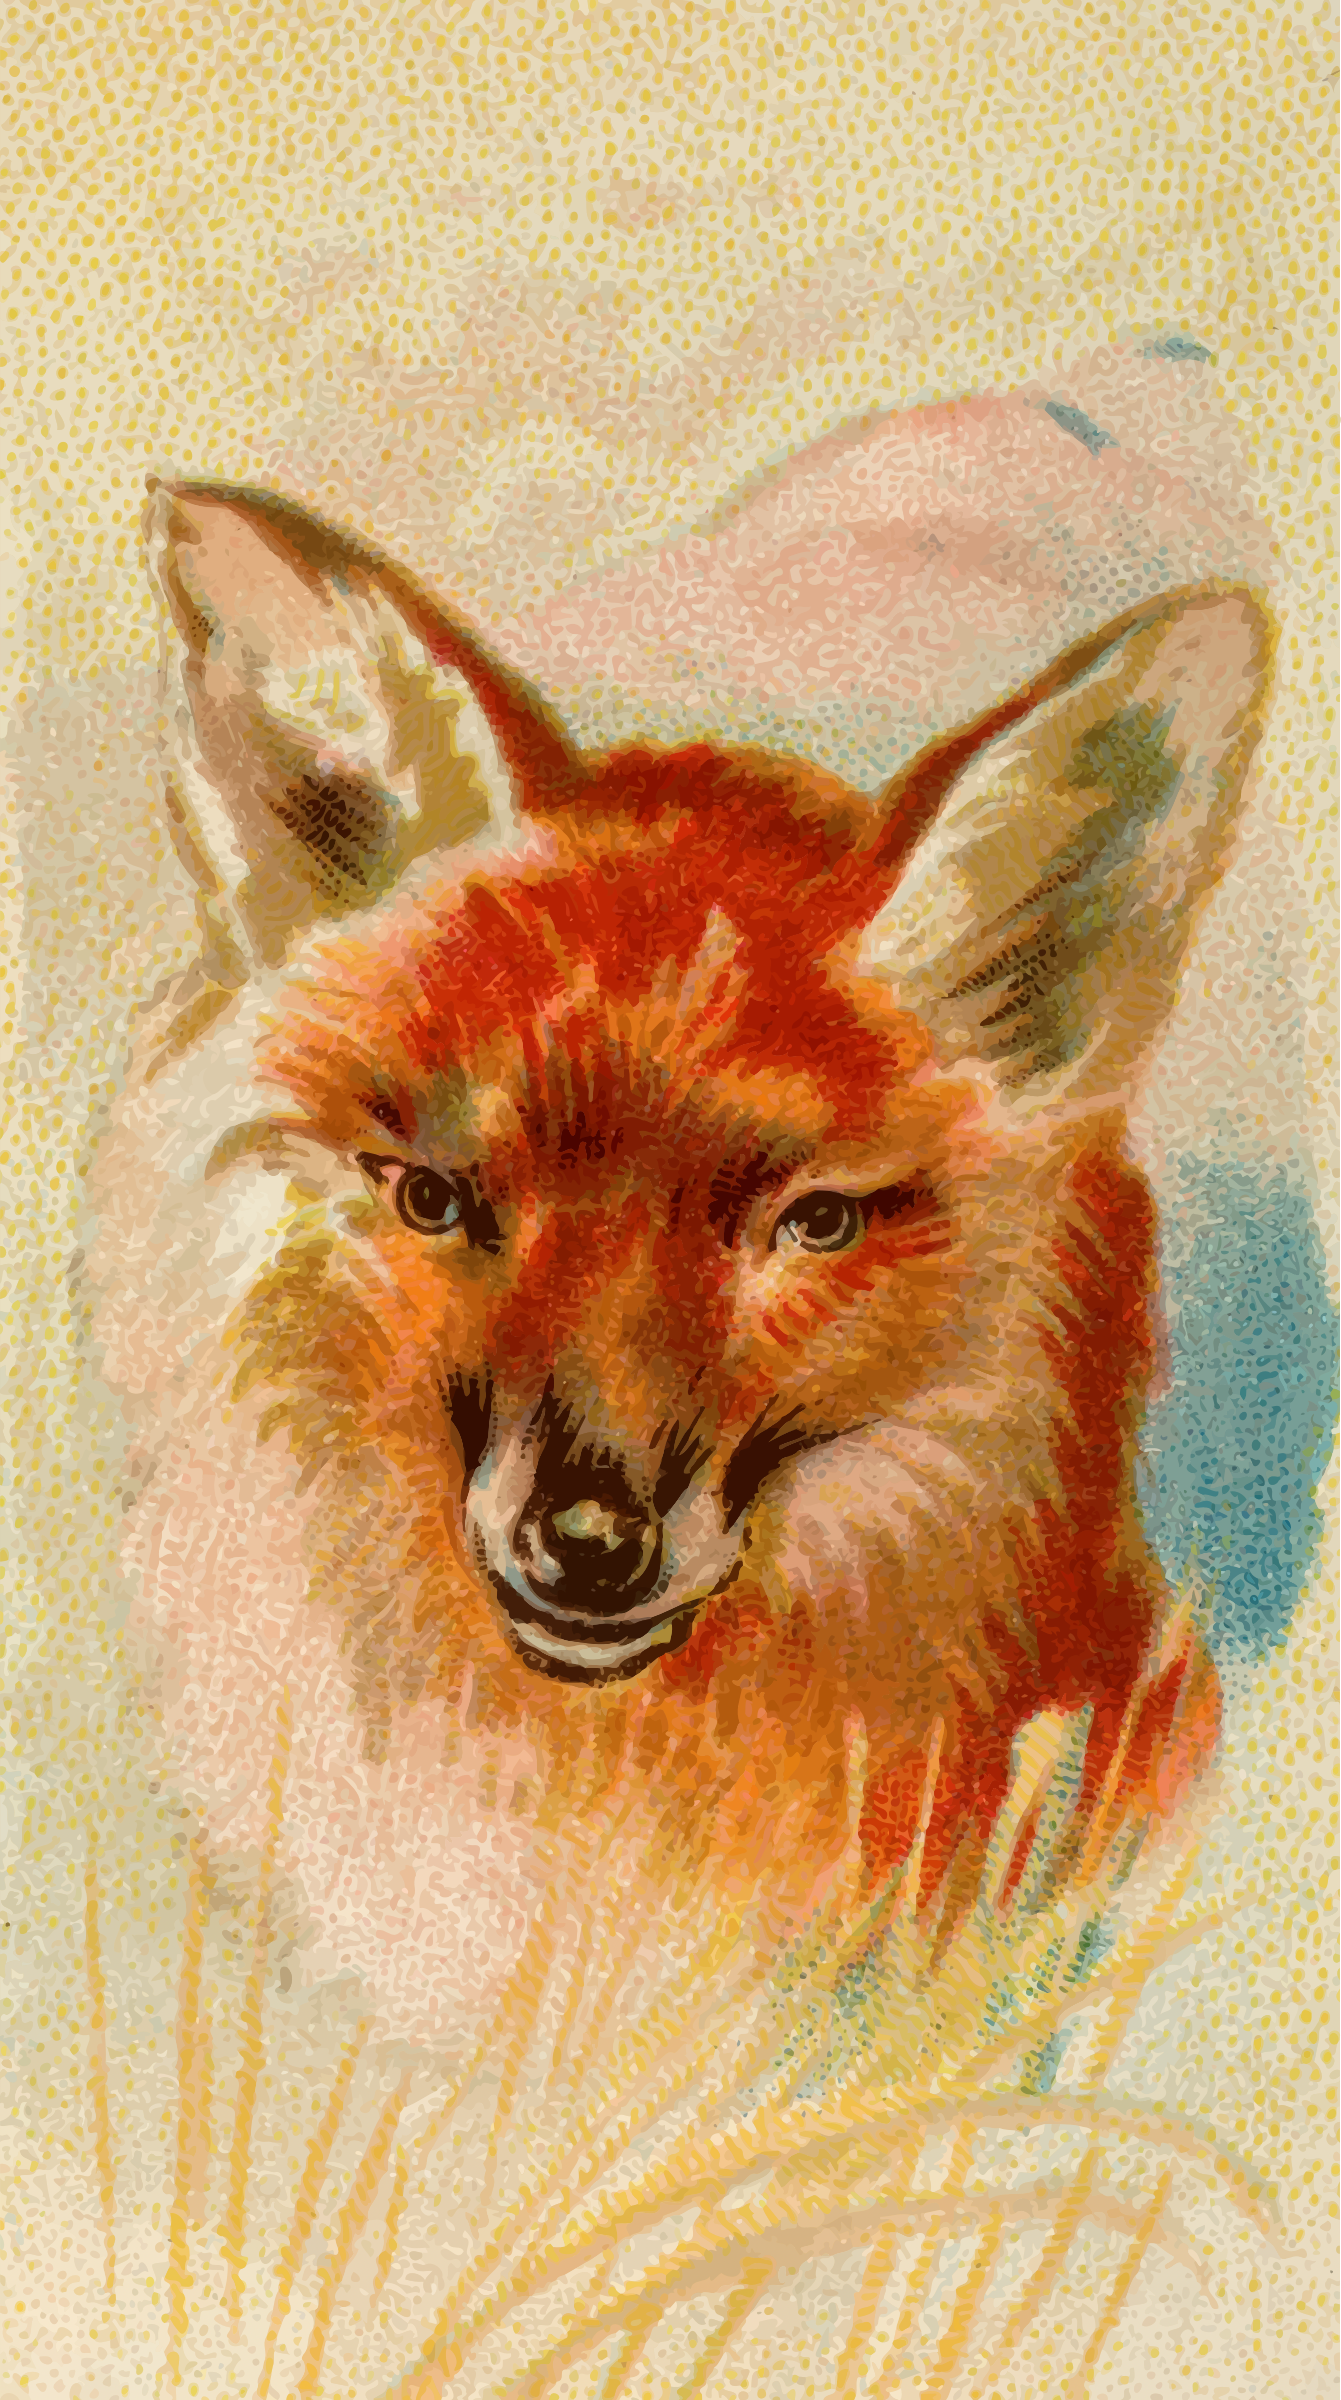 Cigarette card - Red fox by Firkin